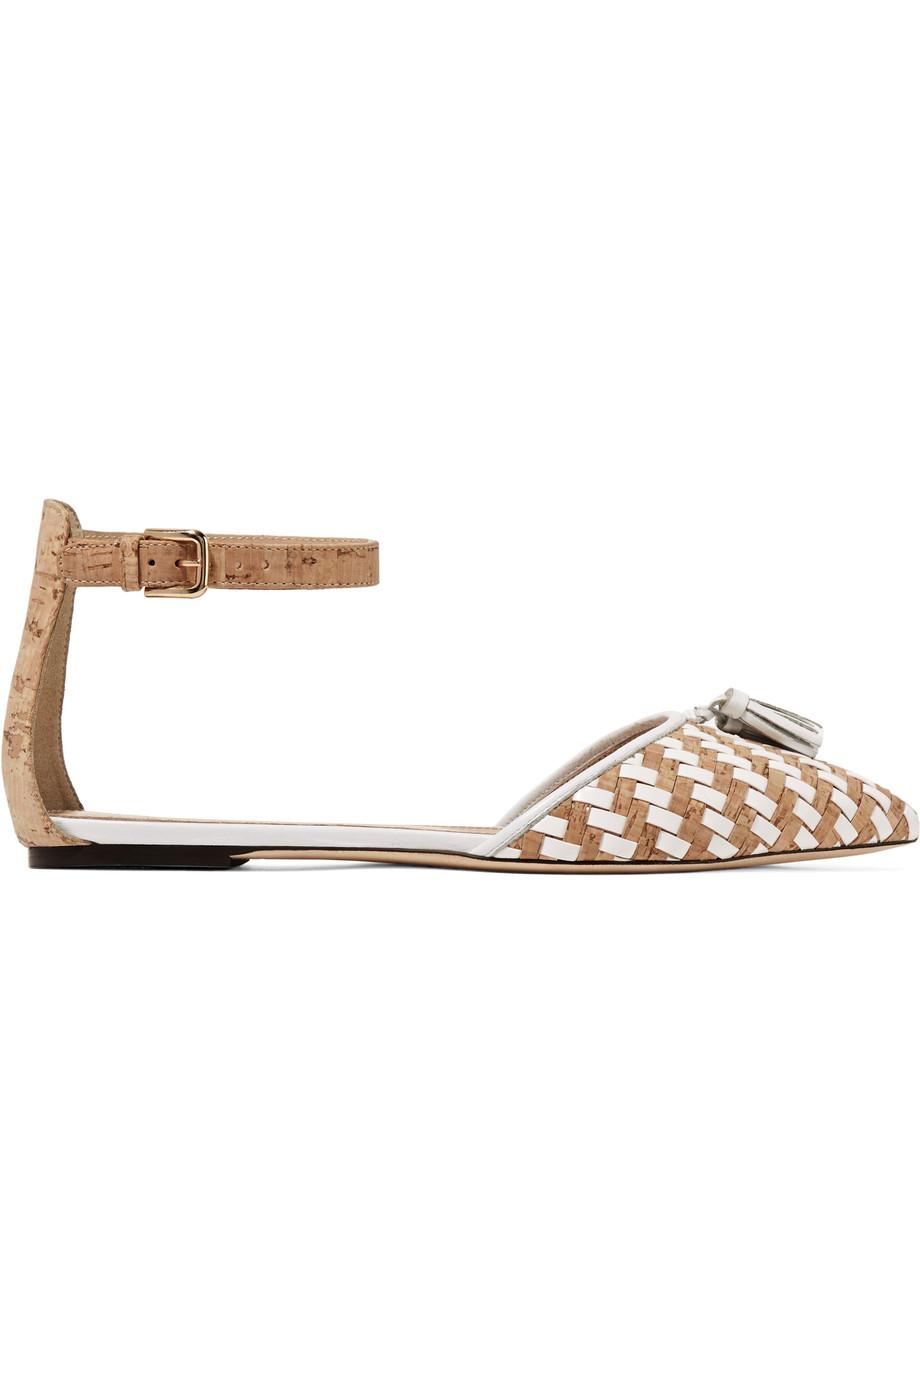 J.Crew Macklin Tassel-Trimmed Cork and Leather Point-Toe Flats, White/Neutral, Women's, Size: 8